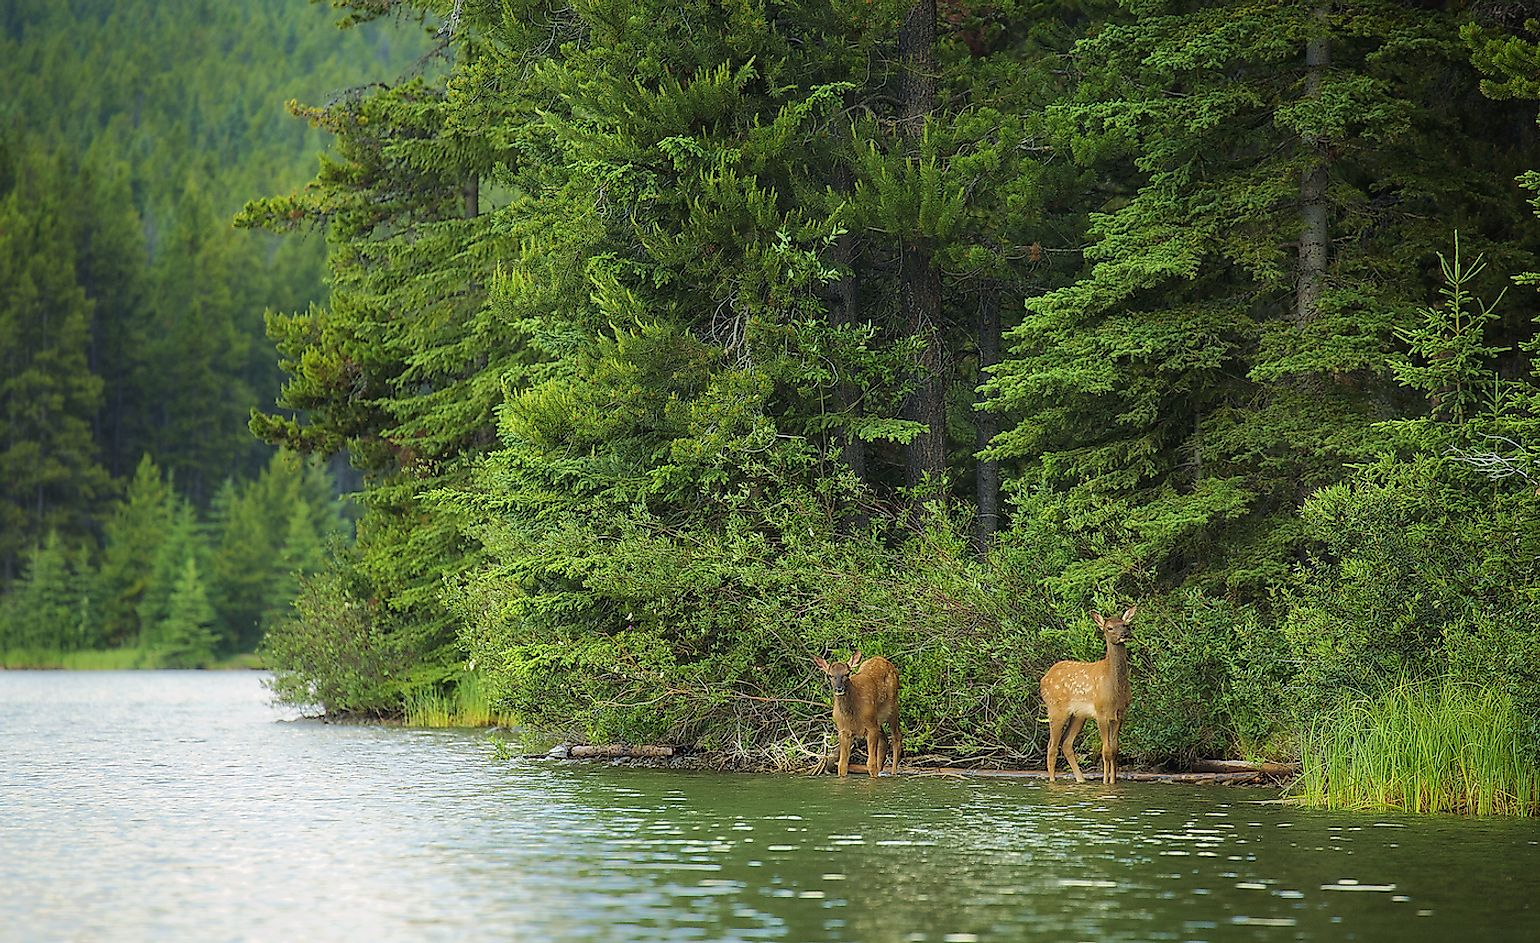 Two elk calves emerge from the forest and drink from a forest lake in Banff National Park, Alberta. Image credit: Chase Dekker/Shutterstock.com